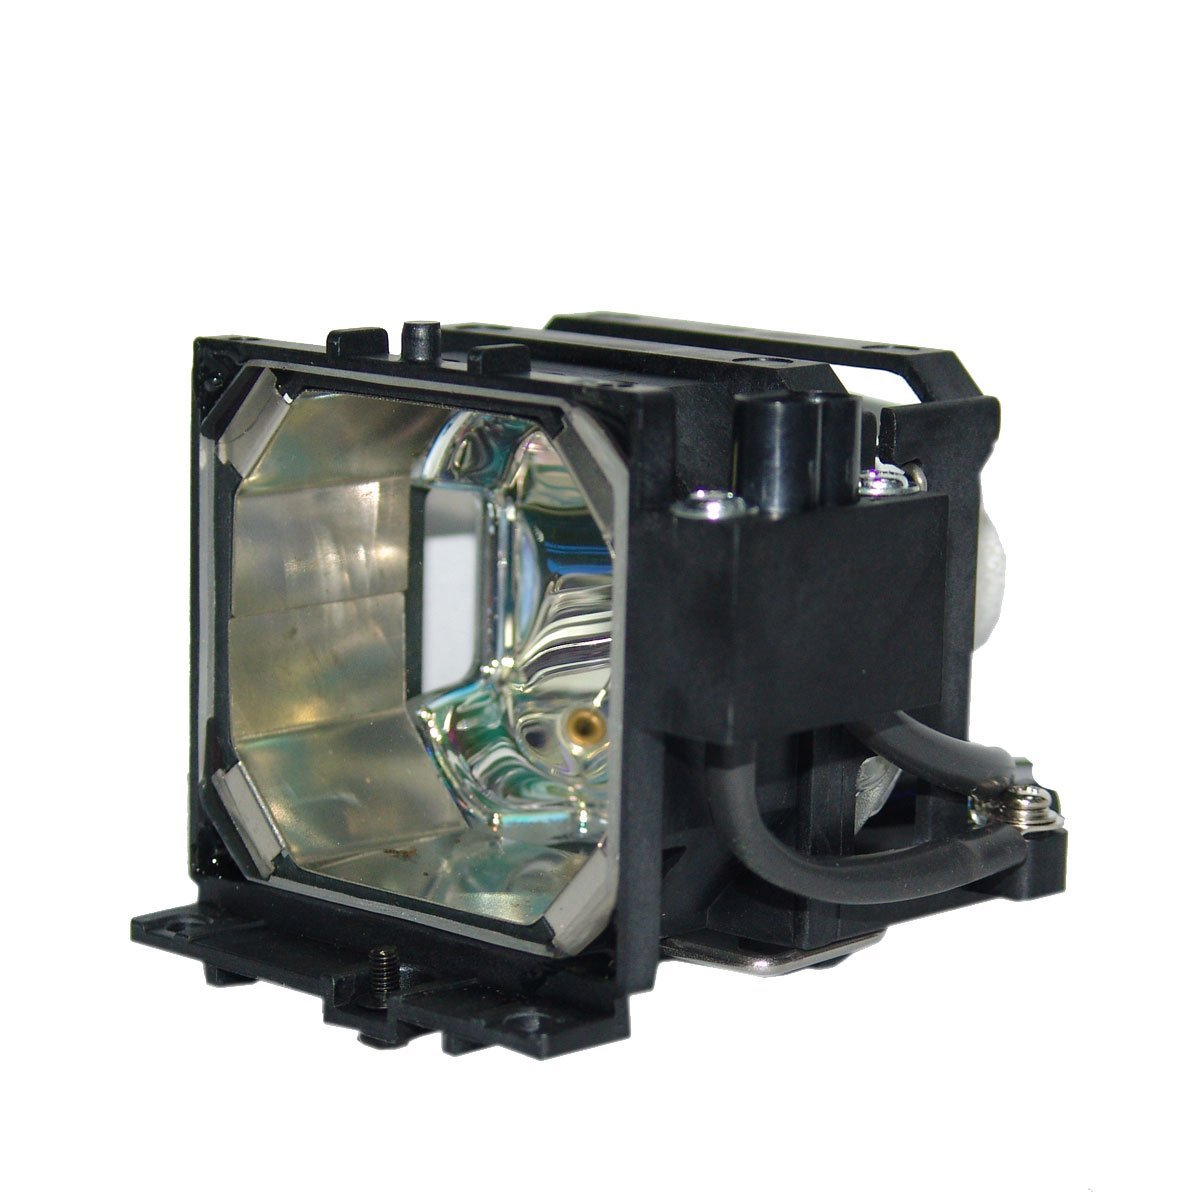 ФОТО Projector bulb LMP-H150 for SONY VPL-HS2 VPL-HS3 Projector Lamp bulb with housing/case free shipping